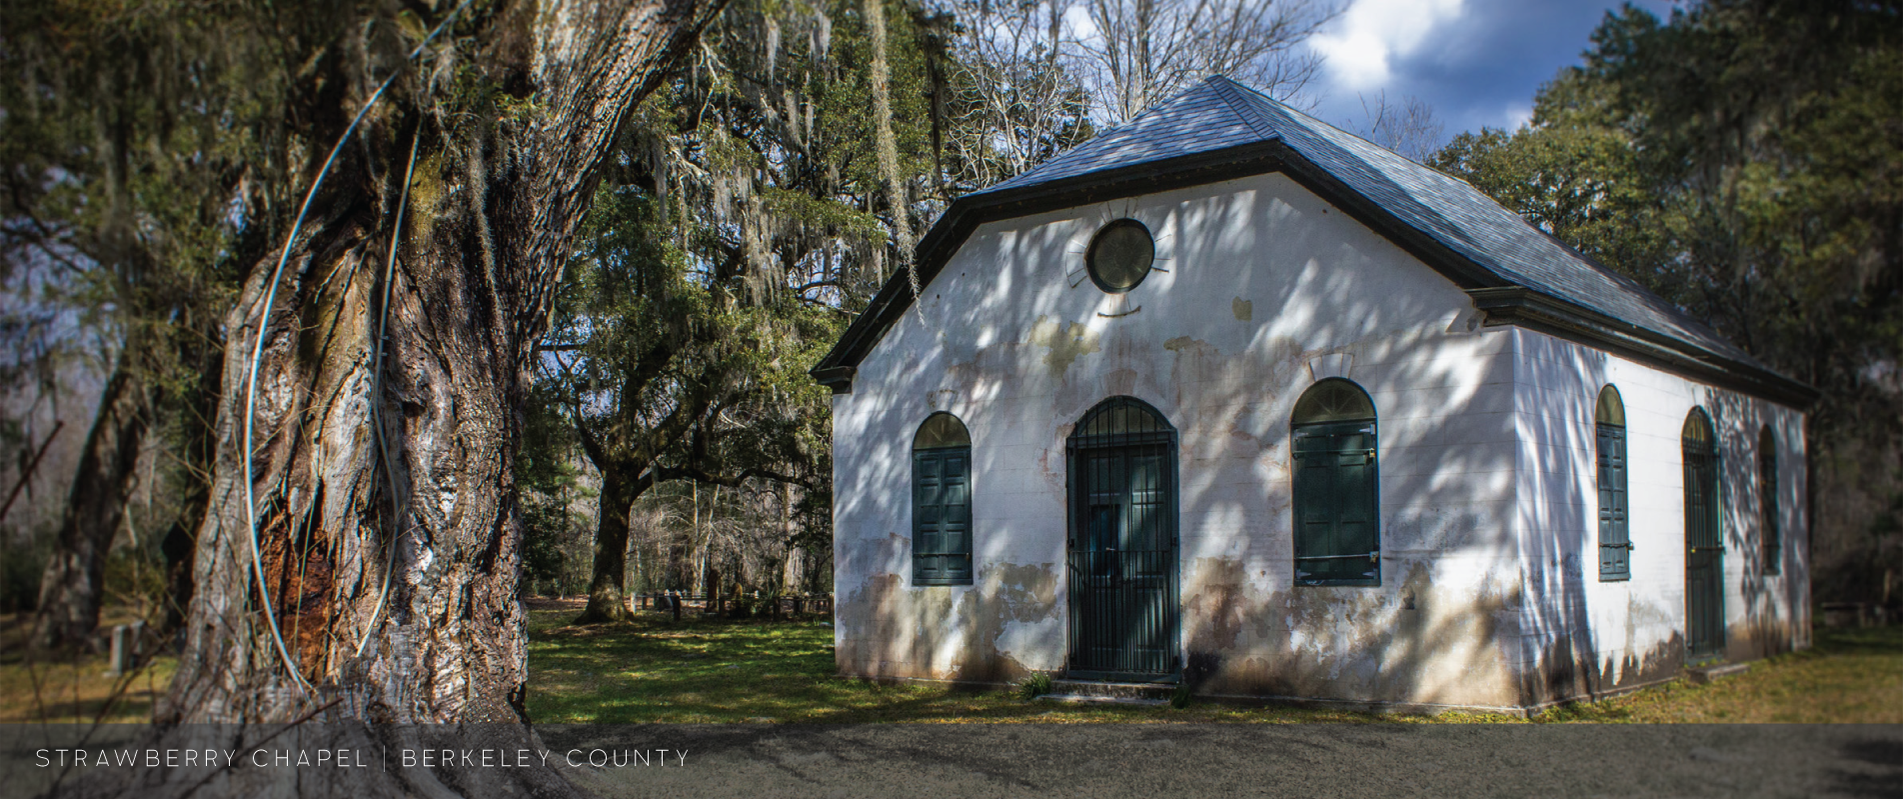 Berkeley-County-with-Text_Strawberry-Chapel-10